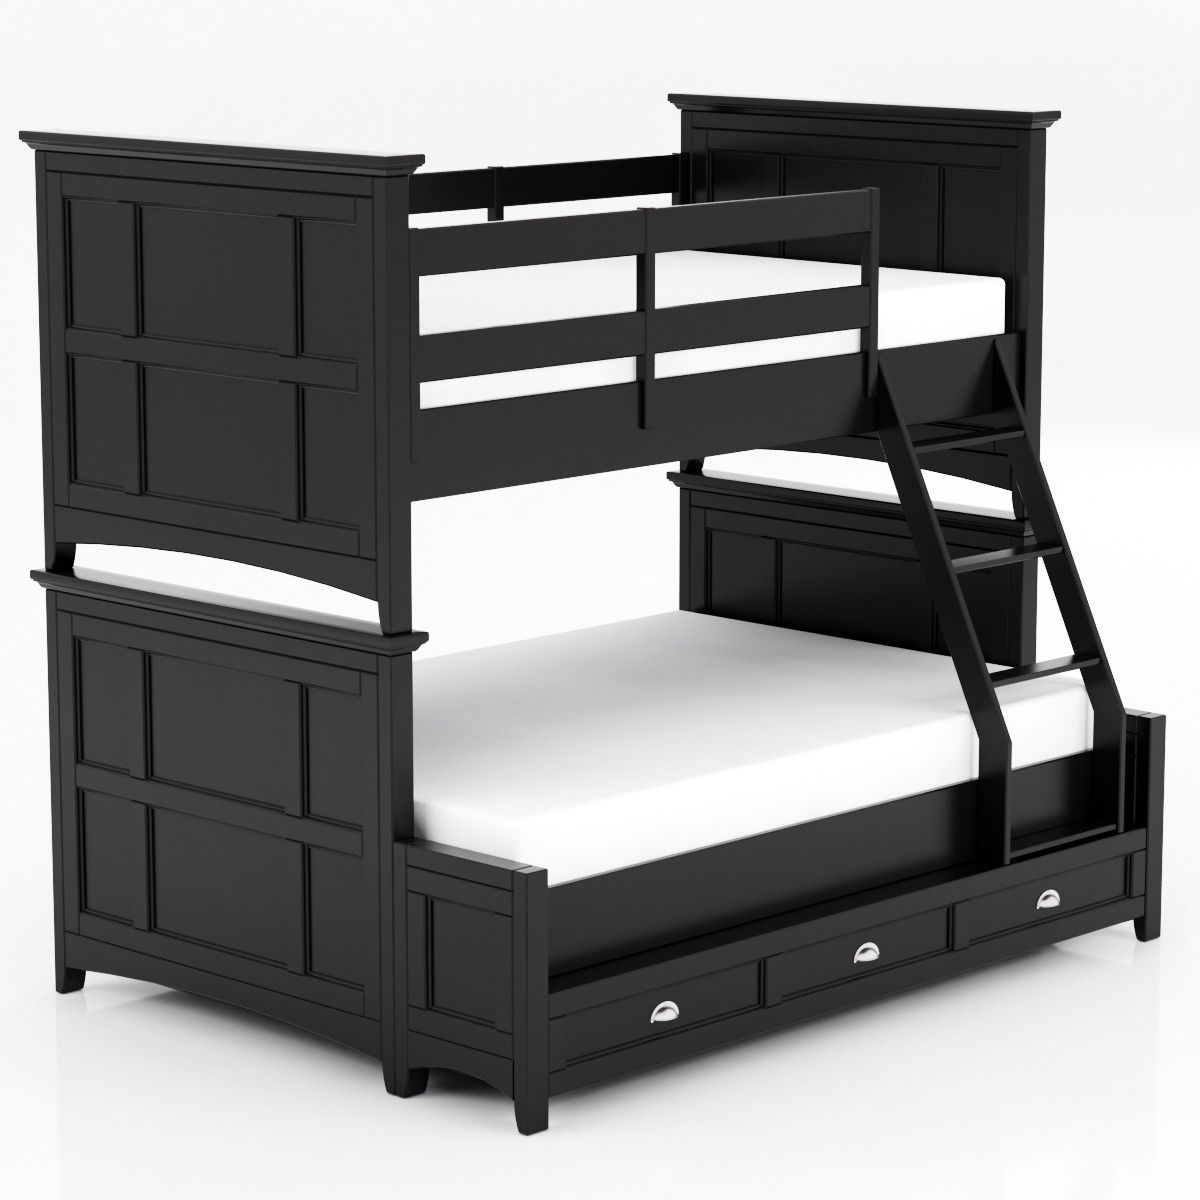 Magnussen Home Bennett Black Bunk Bed 3d Cgtrader